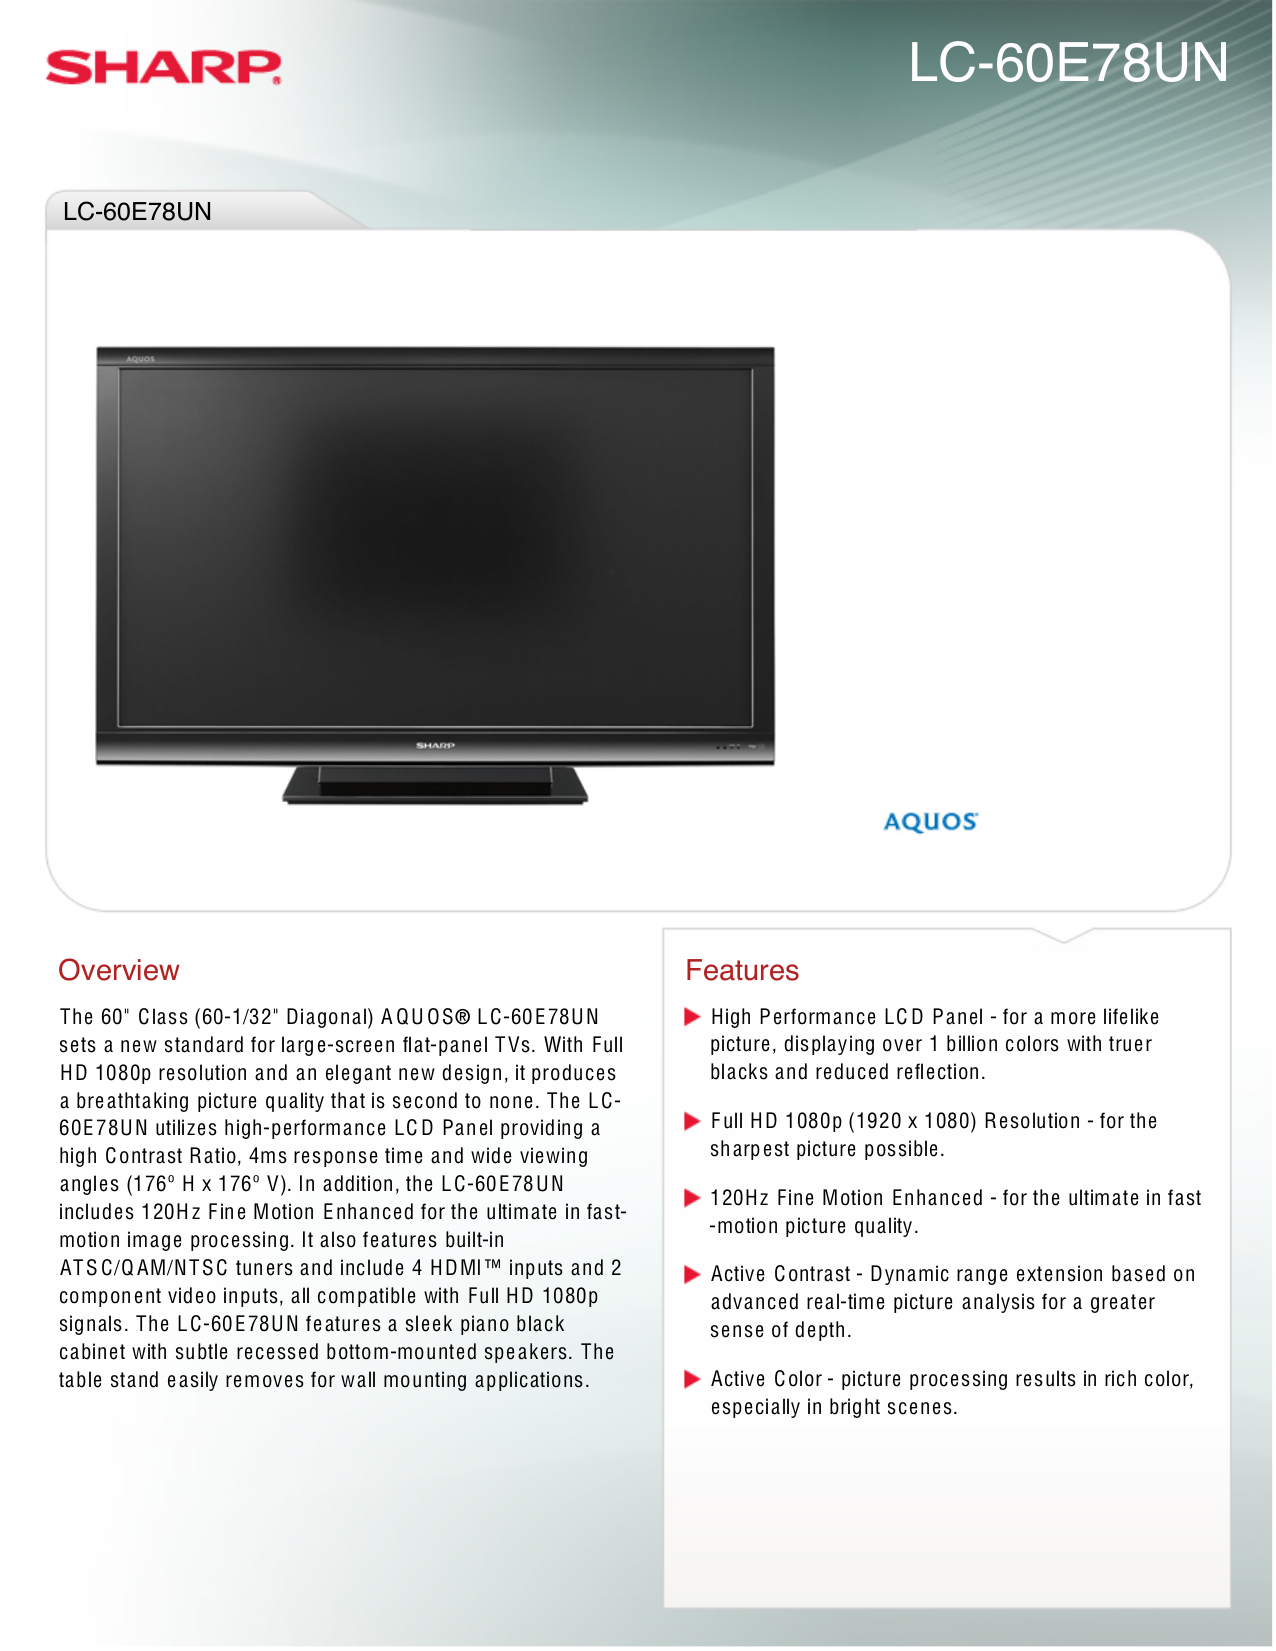 Sharp aquos lcd tv manual product user guide instruction download free pdf for sharp aquos lc 60e78un lcd tv manual rh umlib com sharp aquos led tv manual pdf sharp aquos led tv manual fandeluxe Images